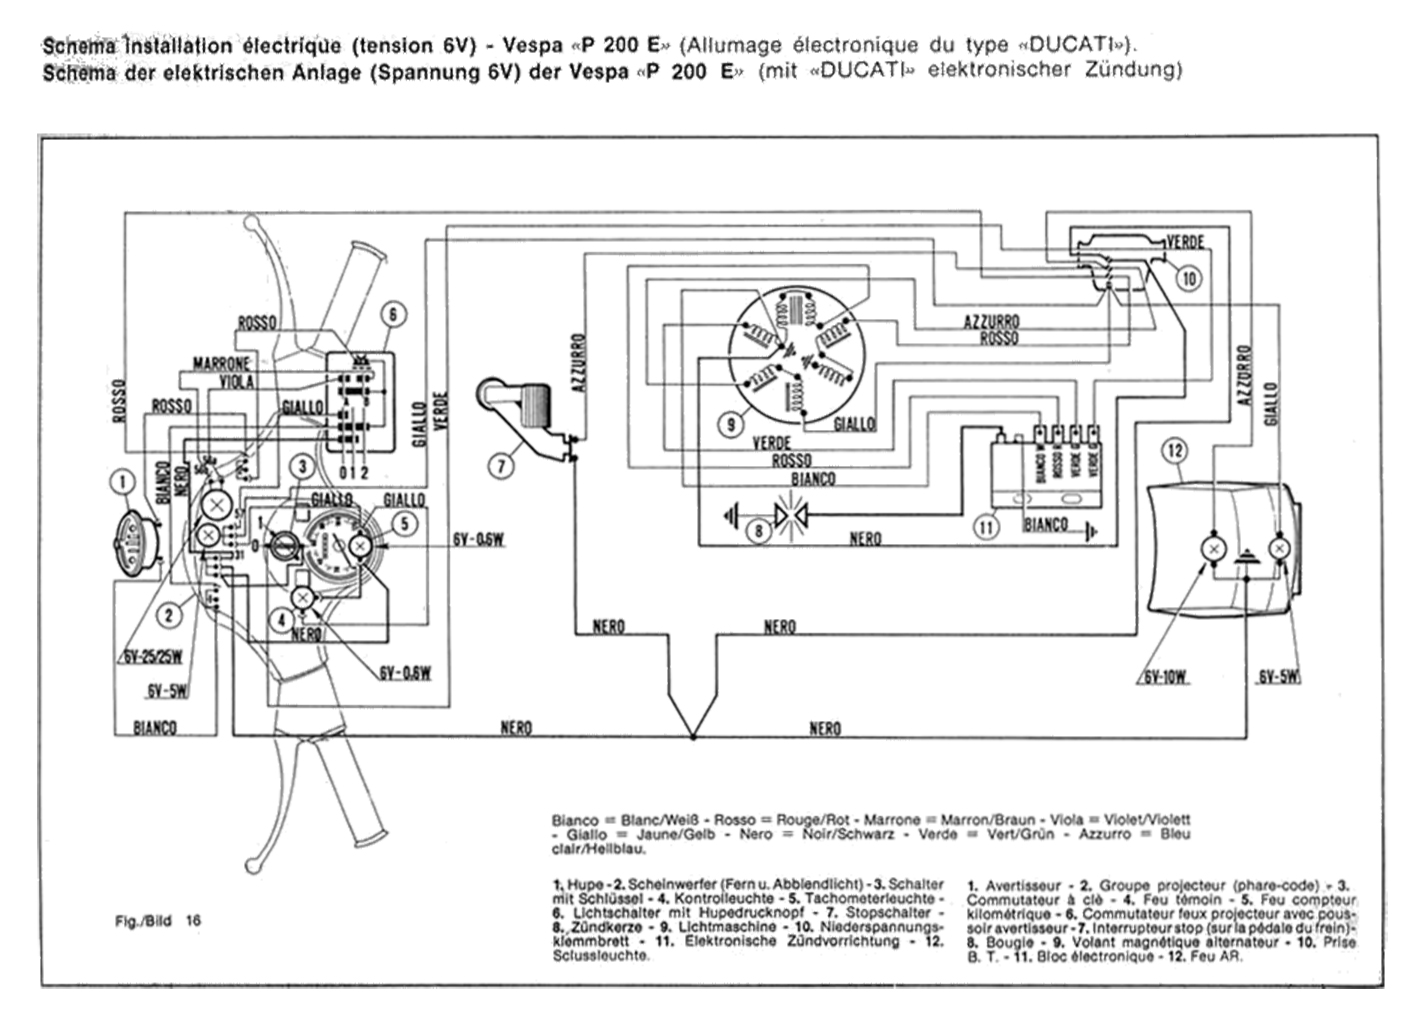 Vespa P200E 6V el wiring diagrams wiring diagrams vespa p200 wiring diagram at bakdesigns.co